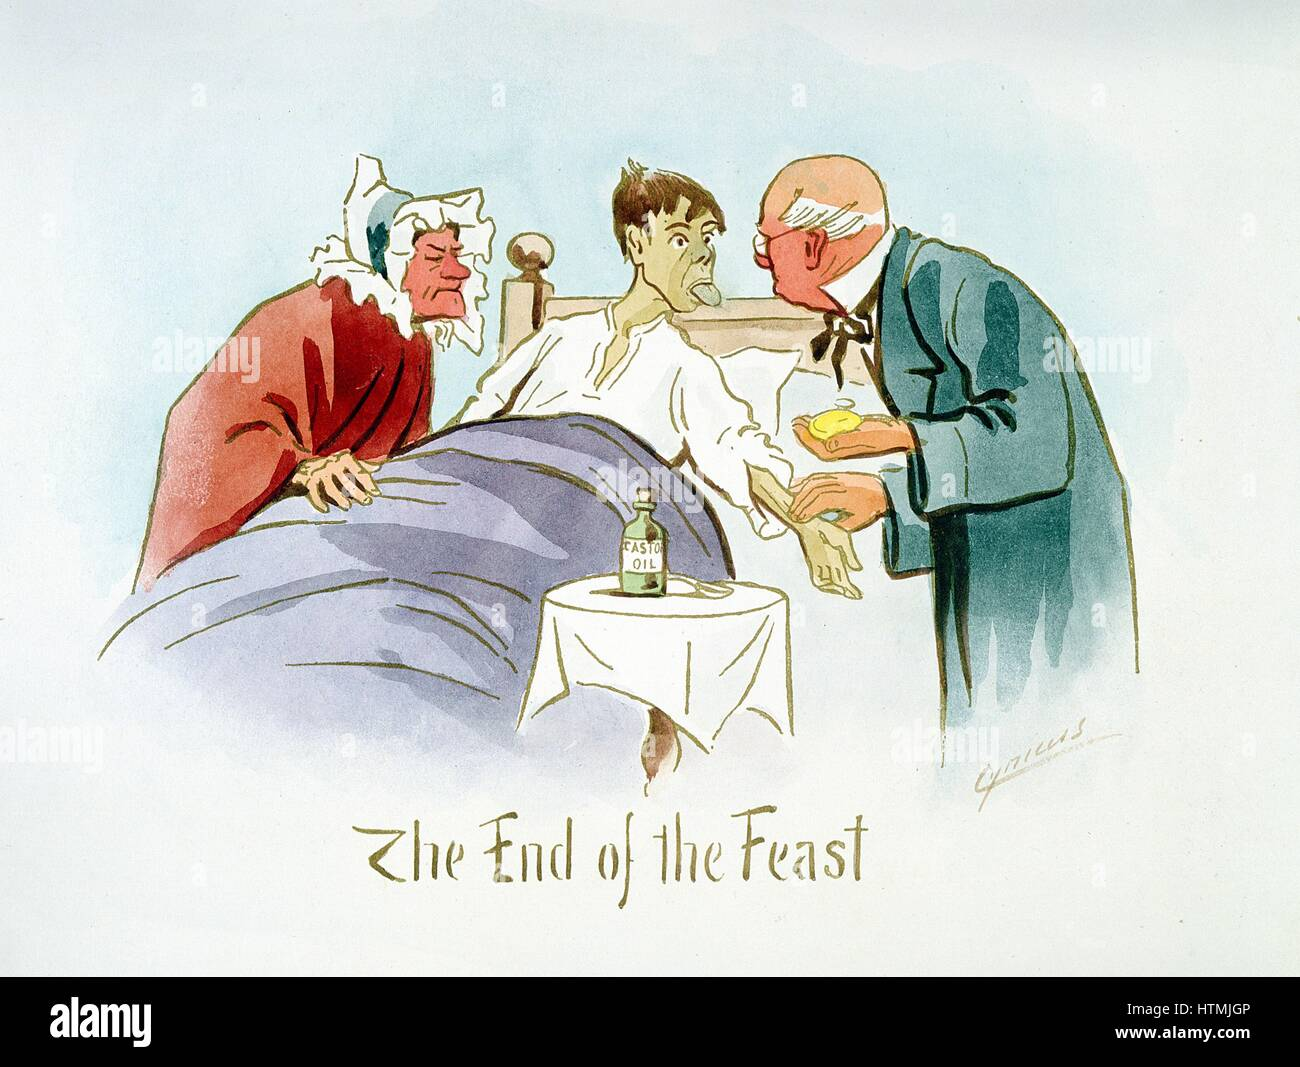 'The End of the Feast': Boy in bed shows furred tongue to doctor who feels pulse. On table is bottle of - Stock Image